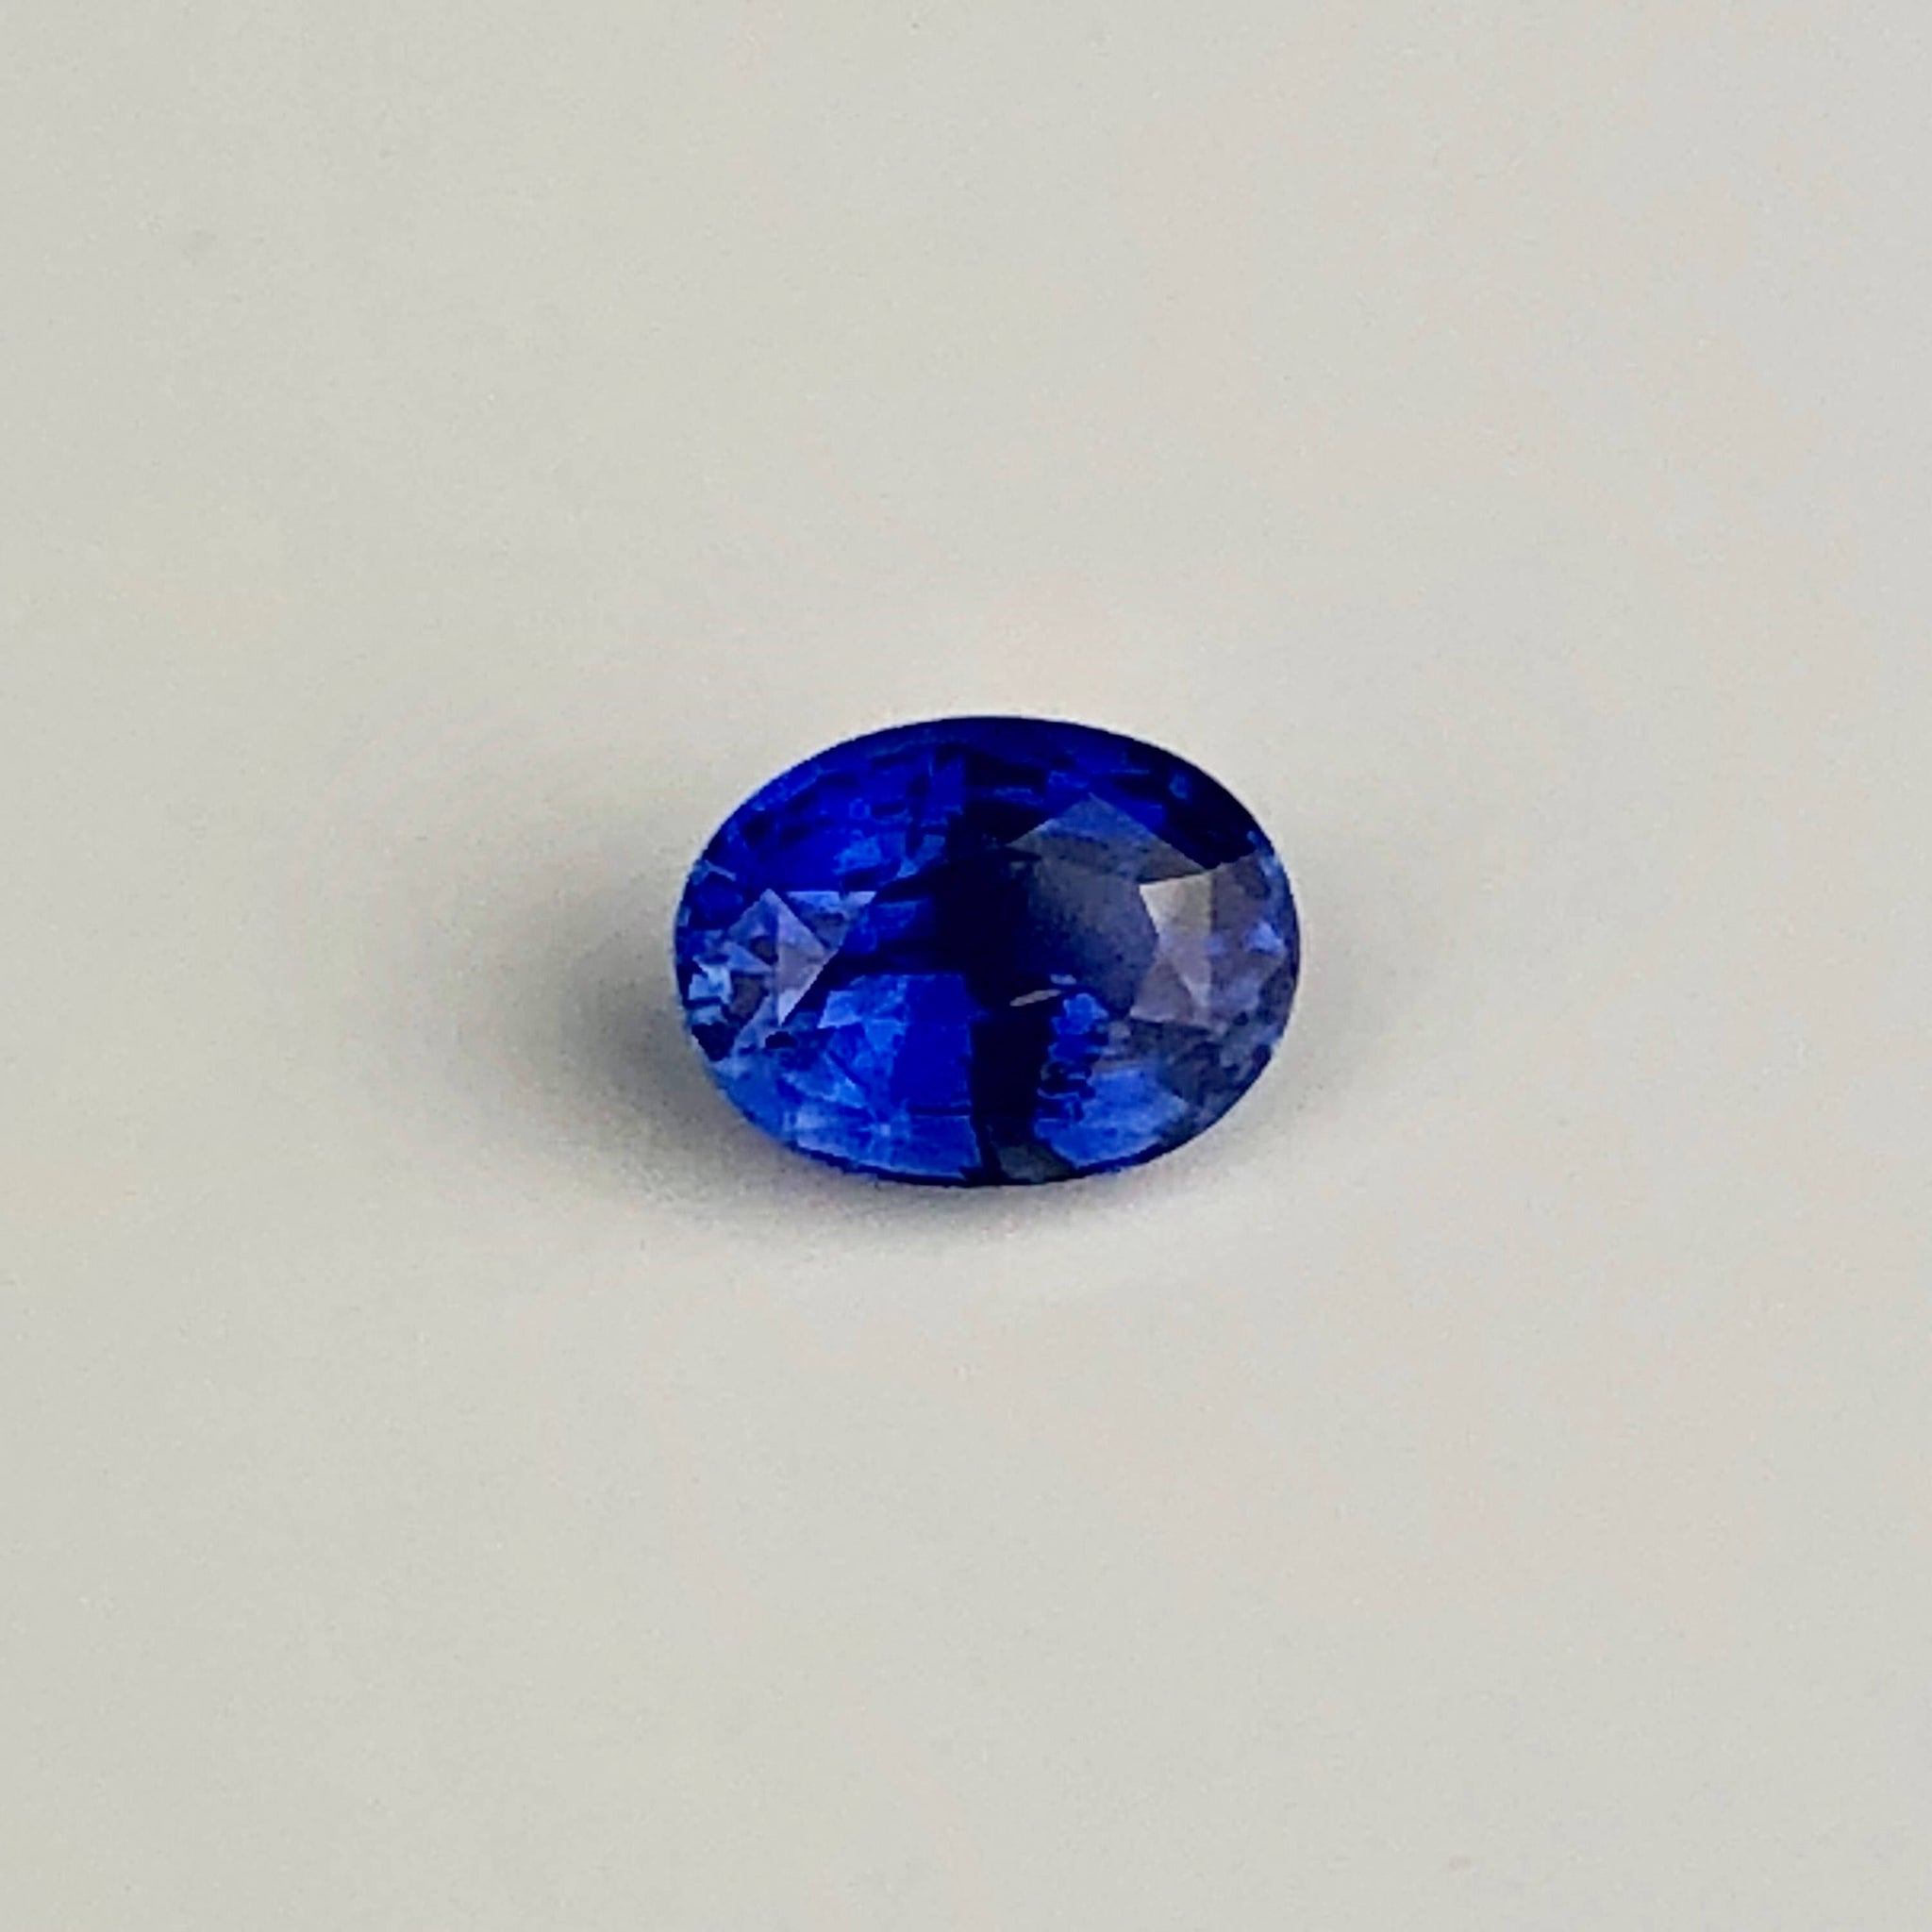 cocktail at diamond untreated id for j sale sapphire pink master carat gia oval heat jewelry ring natural burma certified rings no